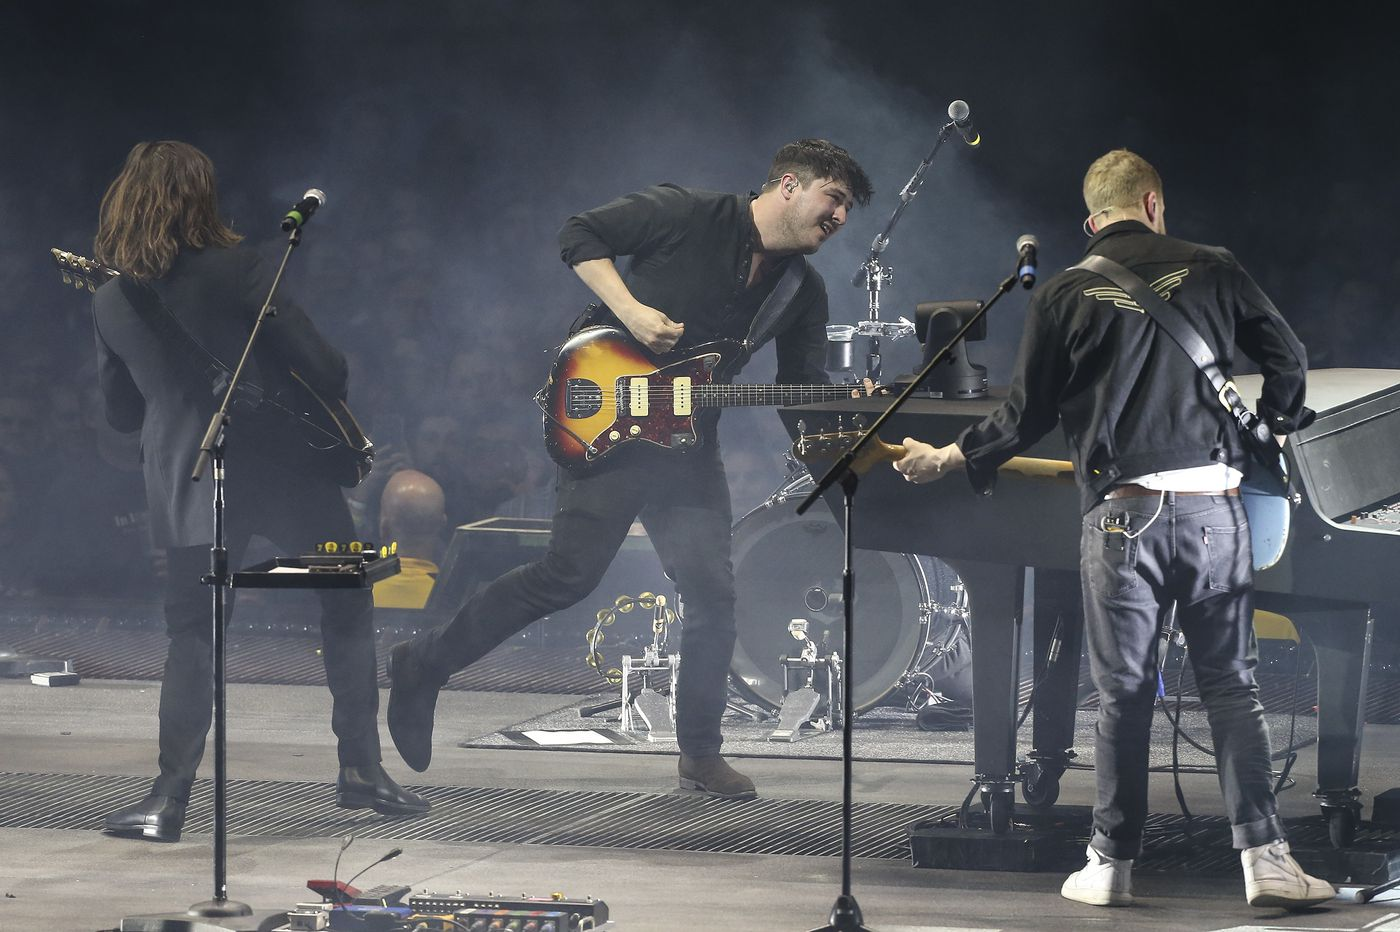 Review: Mumford & Sons kick off U.S. tour with a sold-out show in South Philly